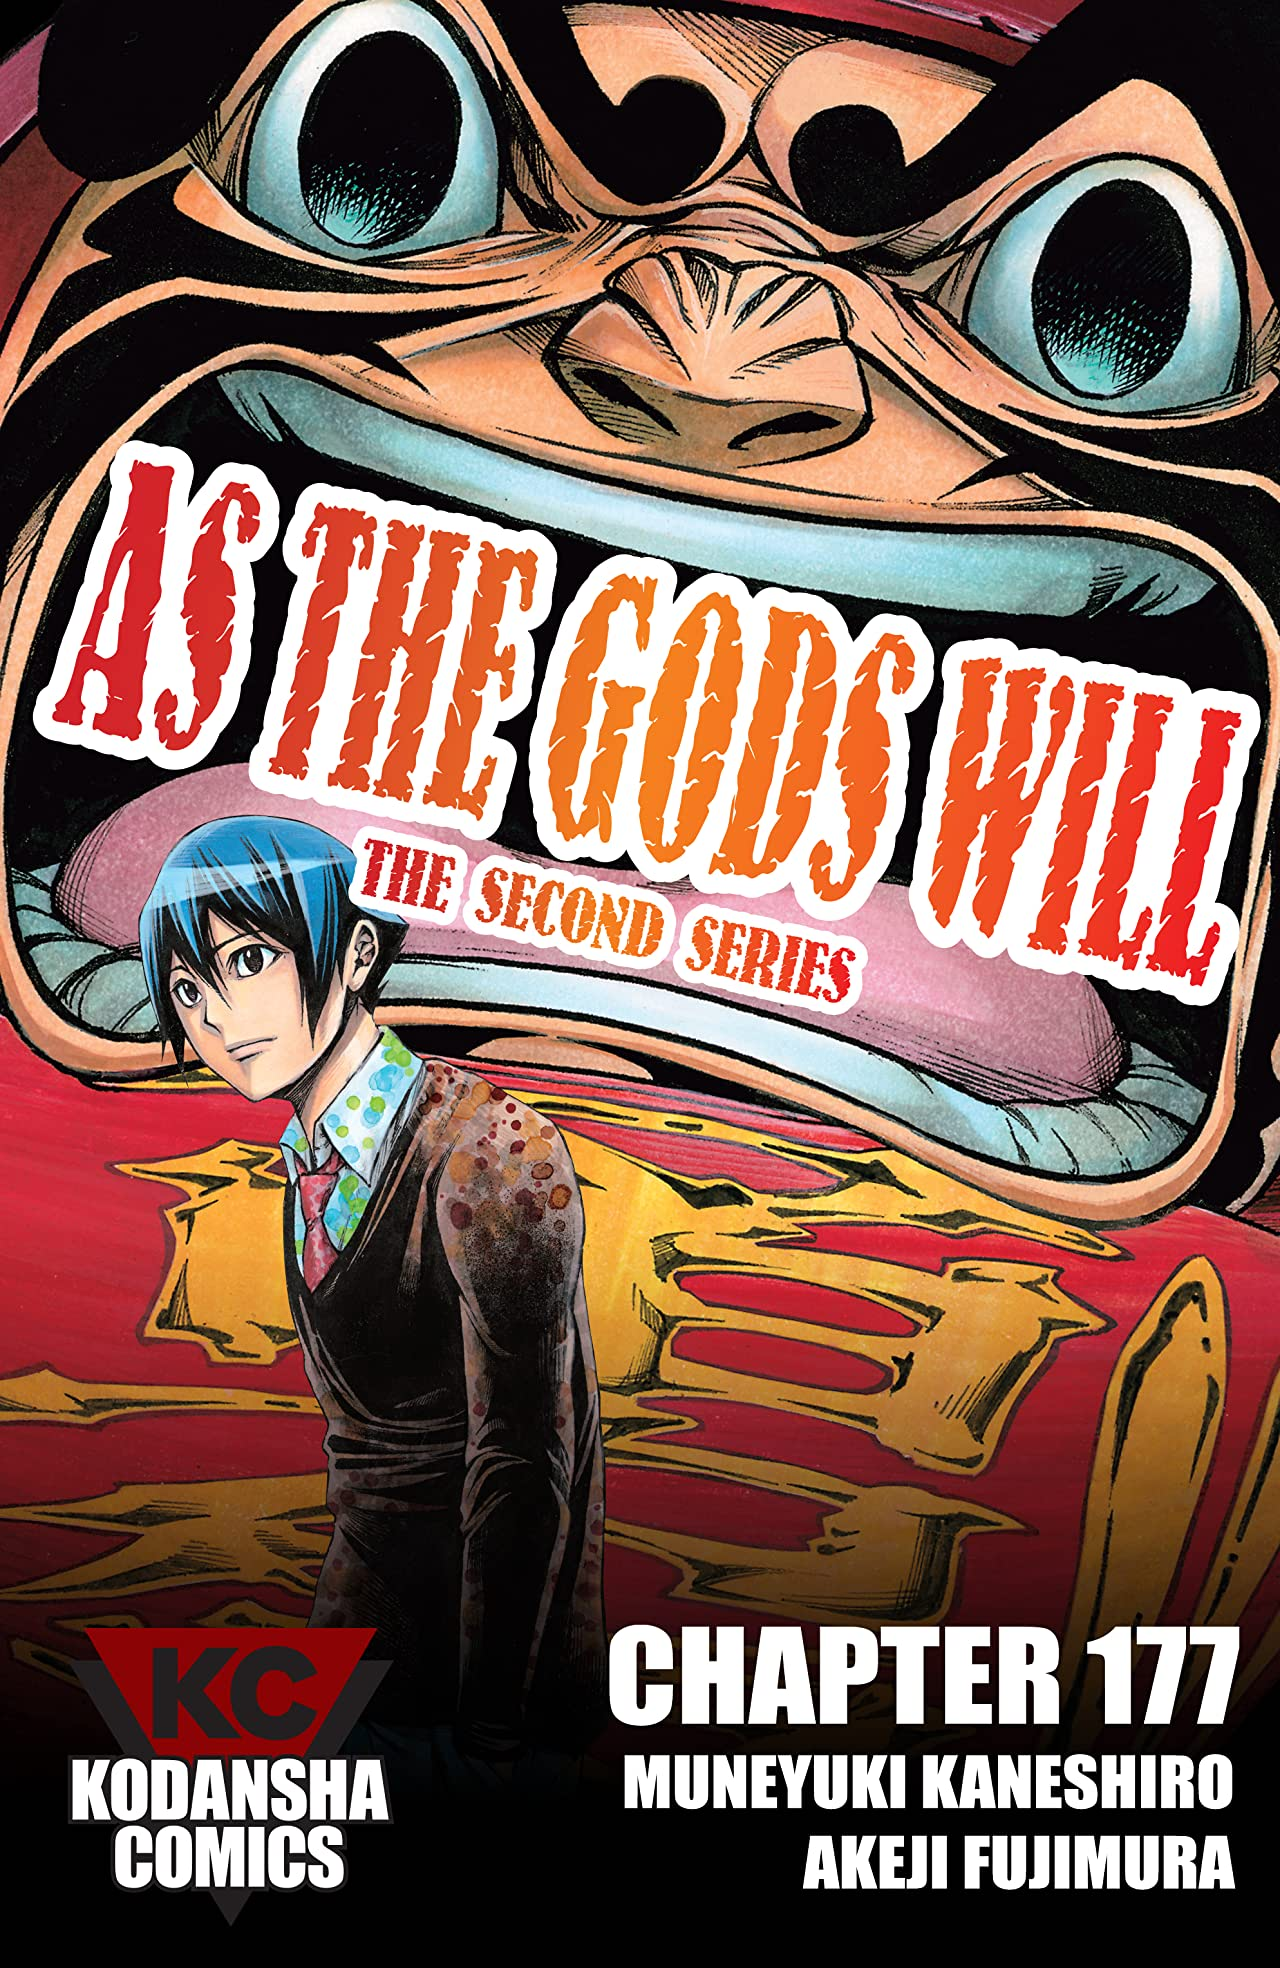 As The Gods Will: The Second Series #177